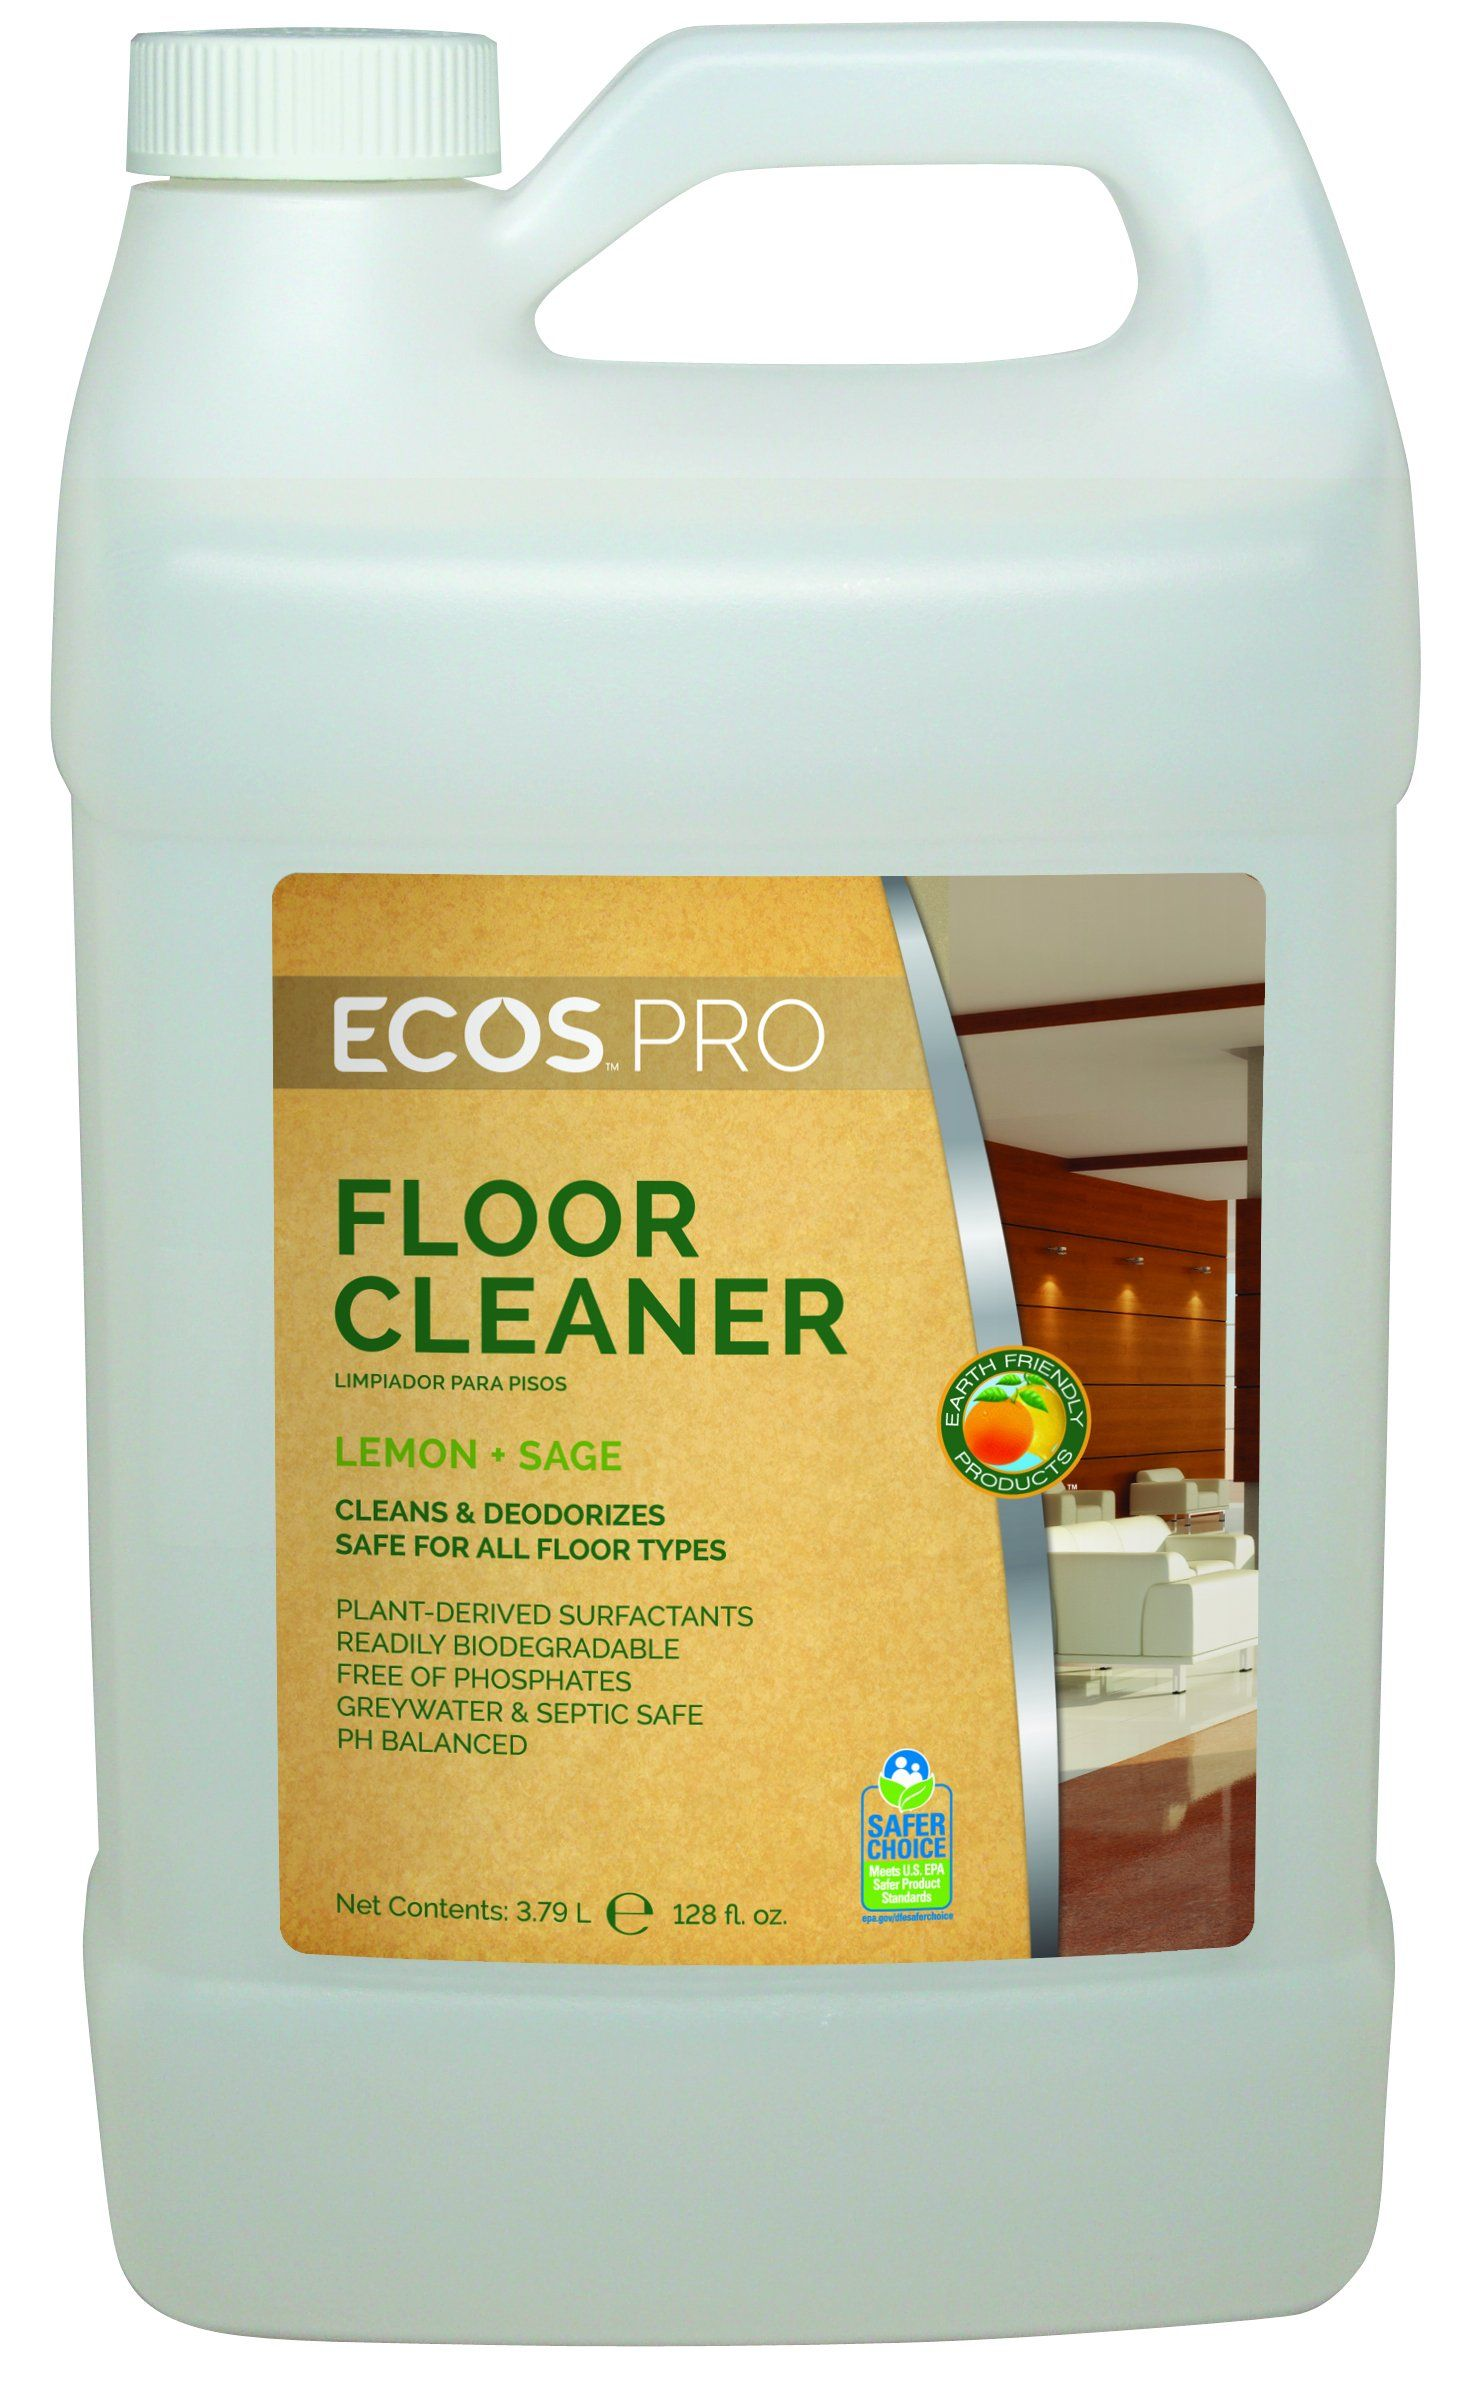 Earth Friendly Products Proline Pl9725 04 Floor Kleener Hardwood And Hard Surface Floor Cleaner 1 Gallon Bottles Floor Cleaner Flooring Biodegradable Products